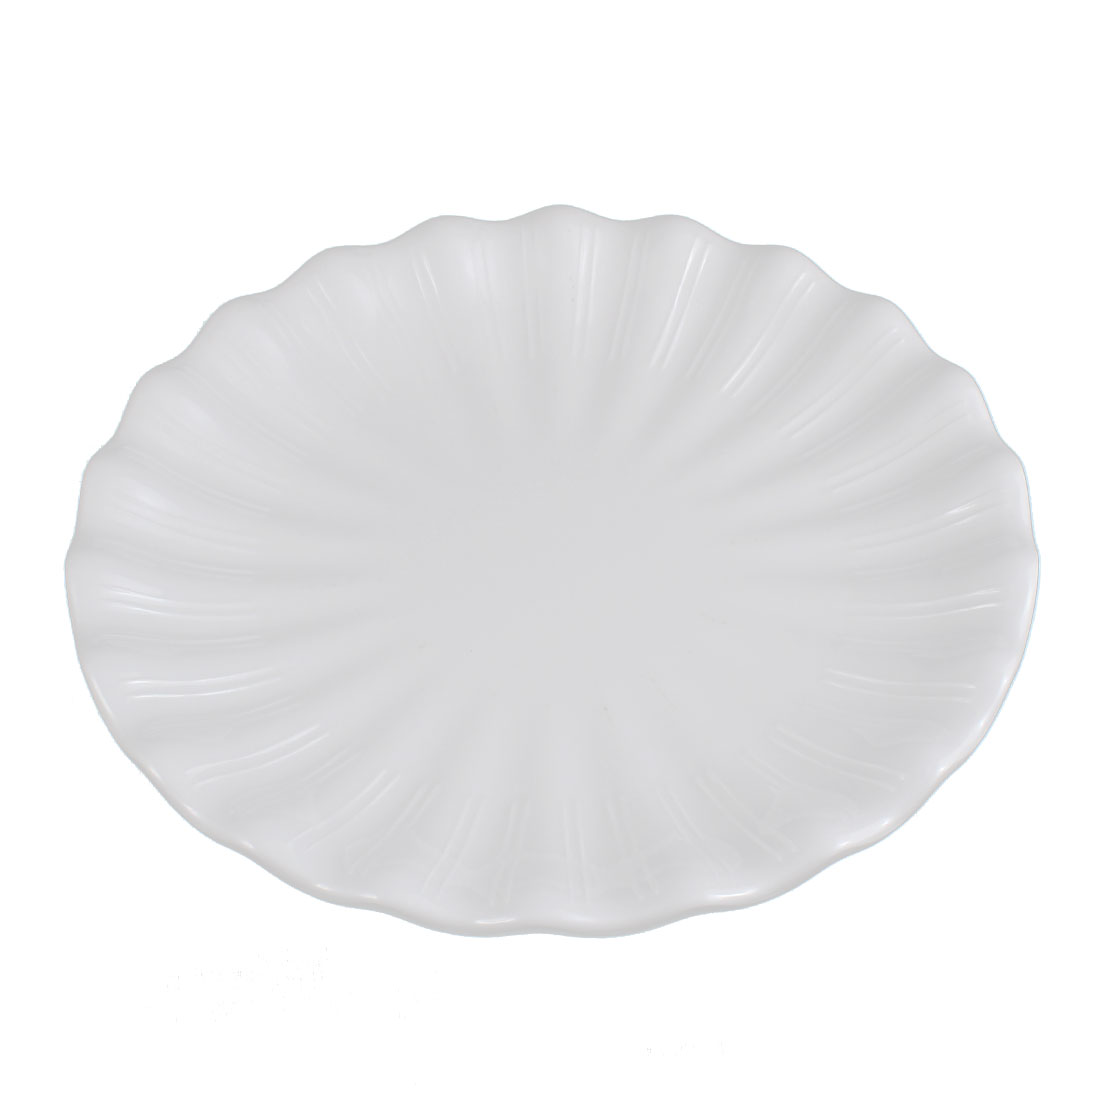 Restaurant Wavy Edge Pastry Appetizer Dessert Food Lunch Dish Plate 20cm Dia